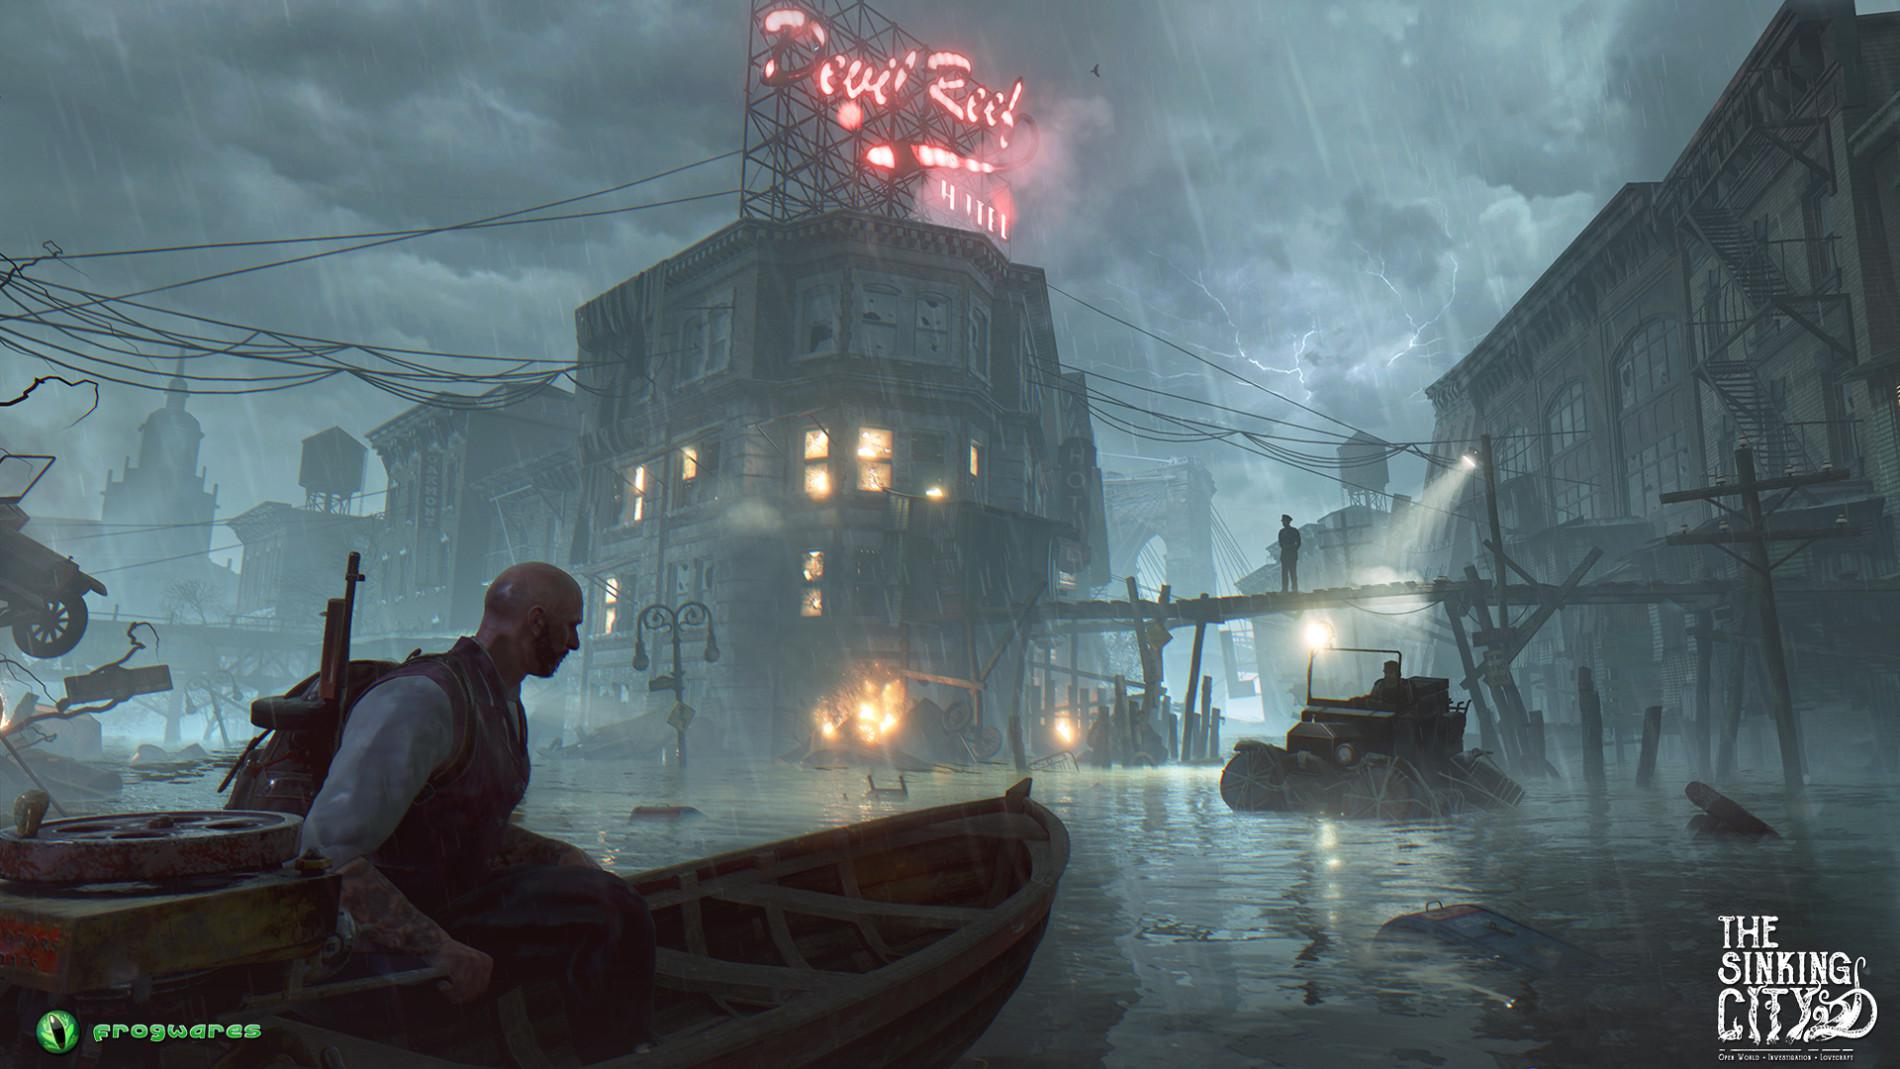 The Sinking City posticipato a giugno Respawn Game